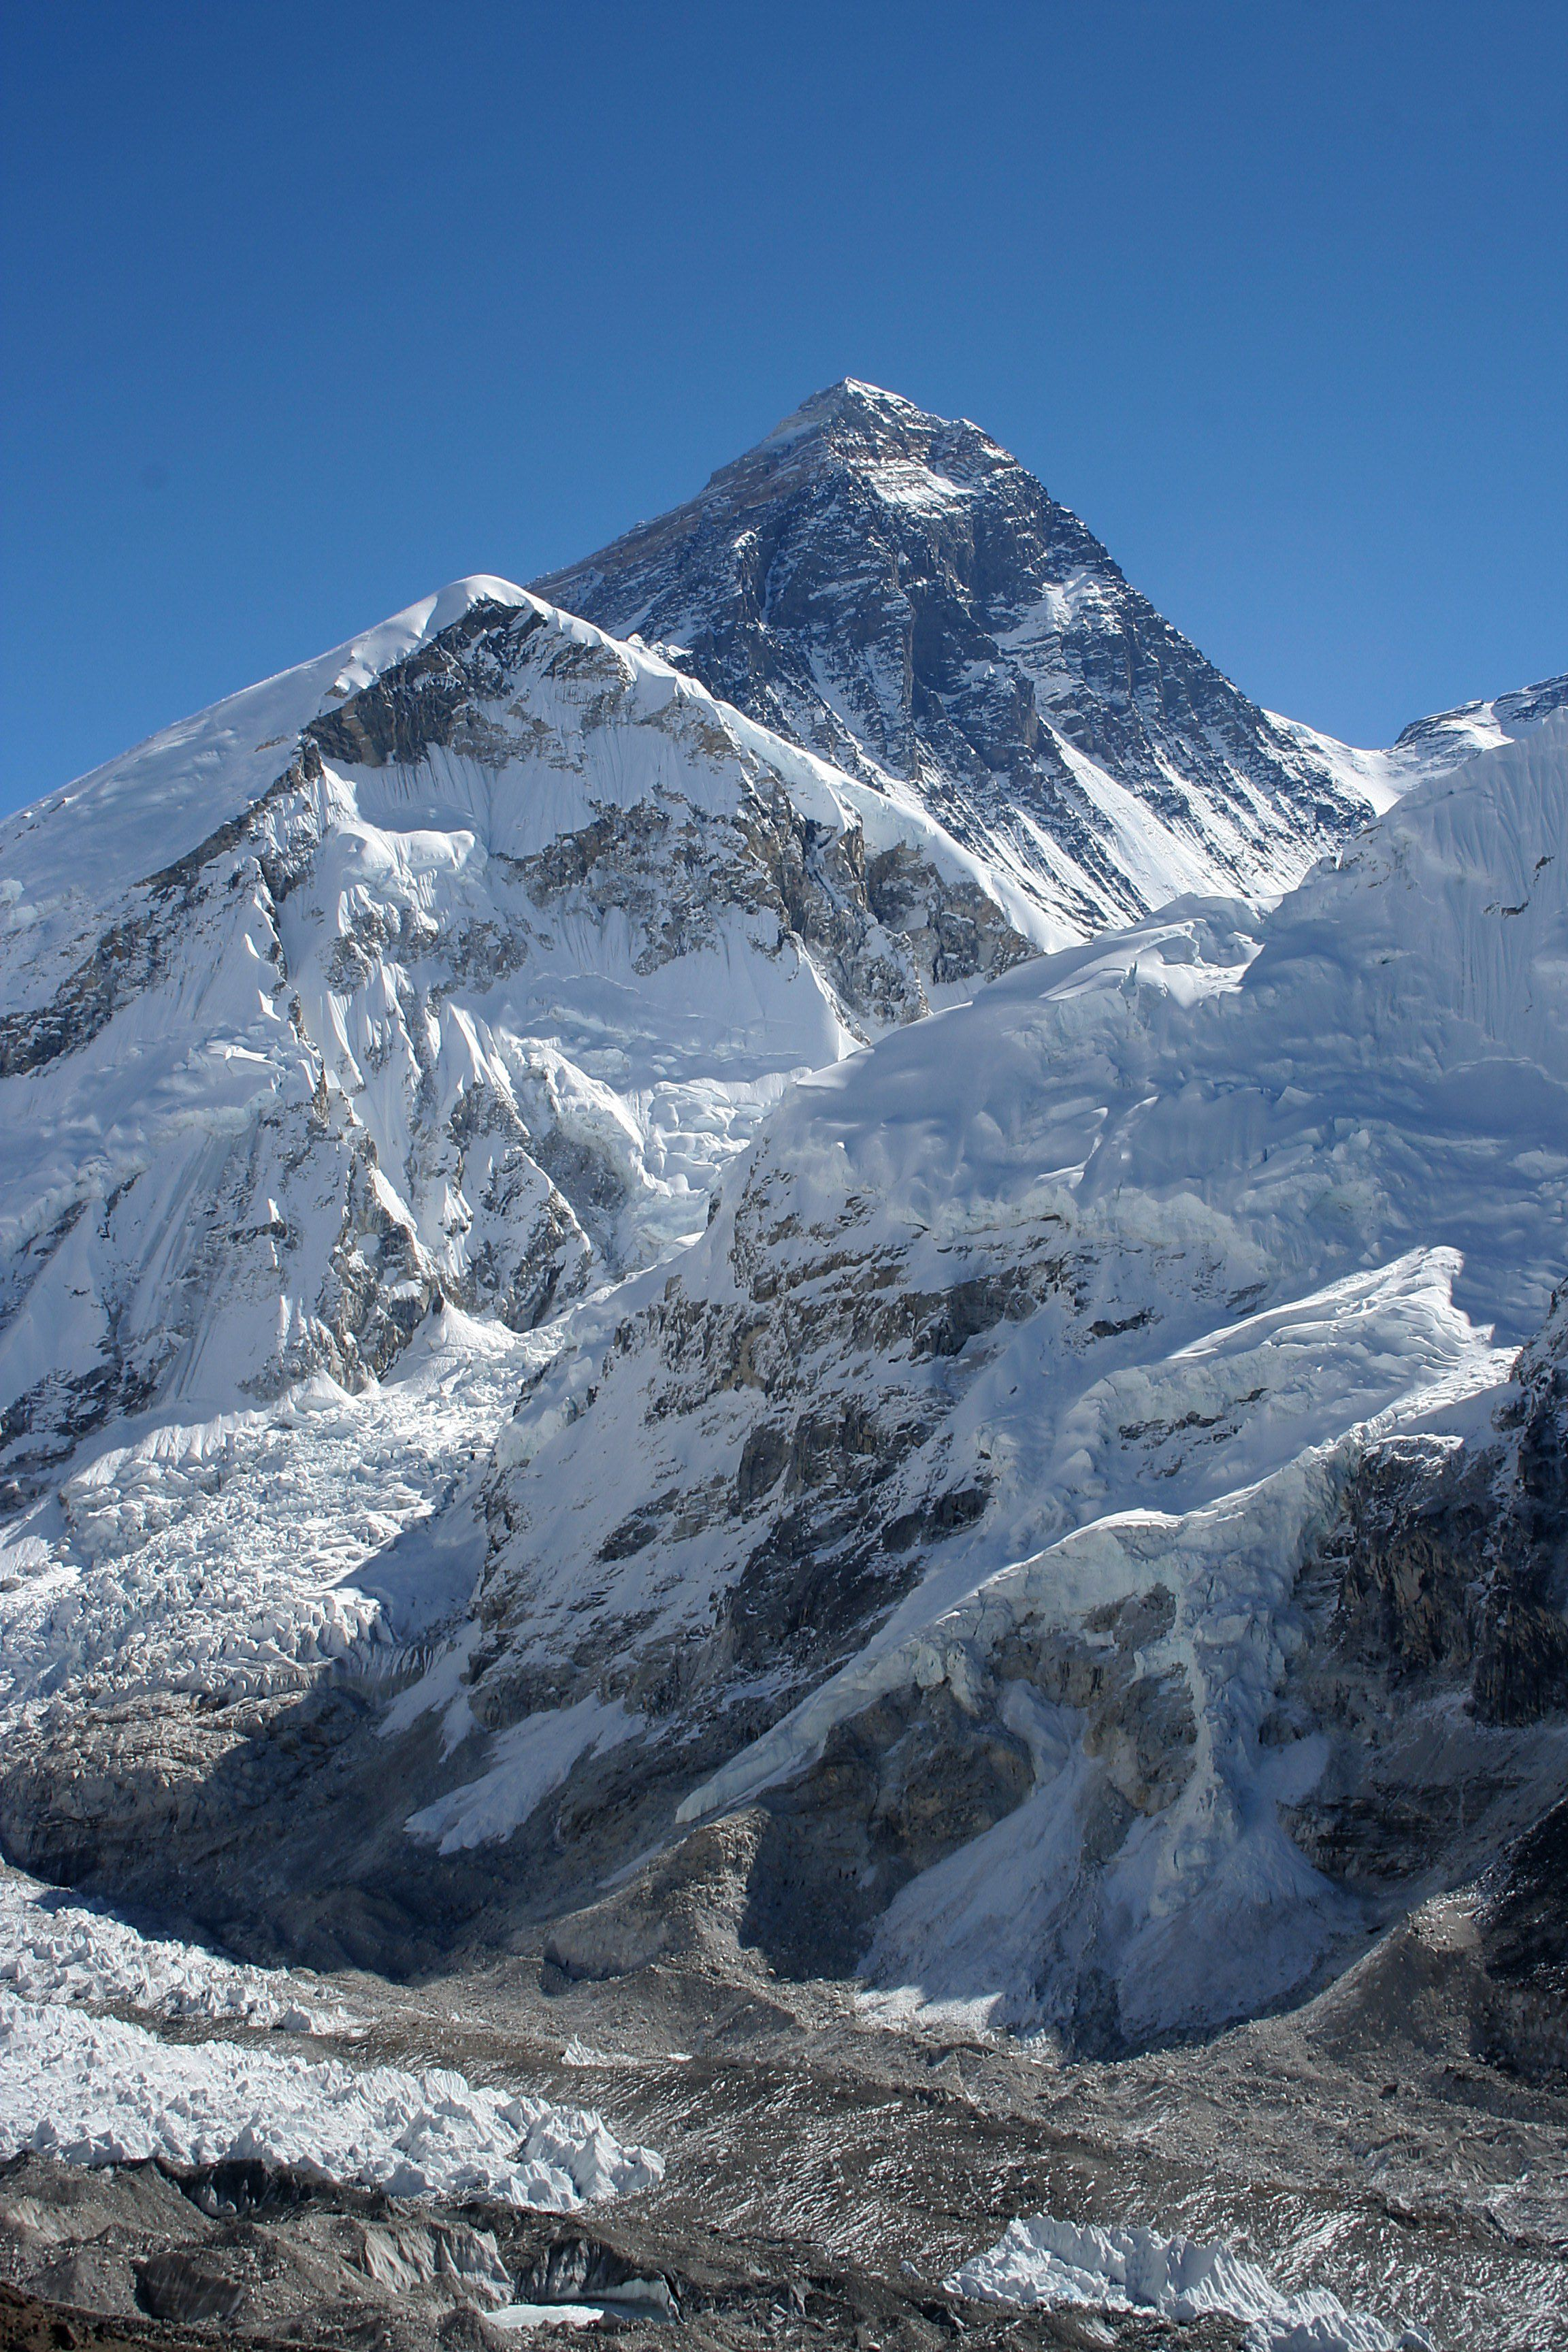 Photograph: Mount Everest seen from Mount Kala Patthar in Nepal. Photo credit: Pavel Novák (original license, of the photo only, obtained at: http:/creativecommons.org/licenses/by-sa/2.5/deed.en), via Wikimedia Commons.